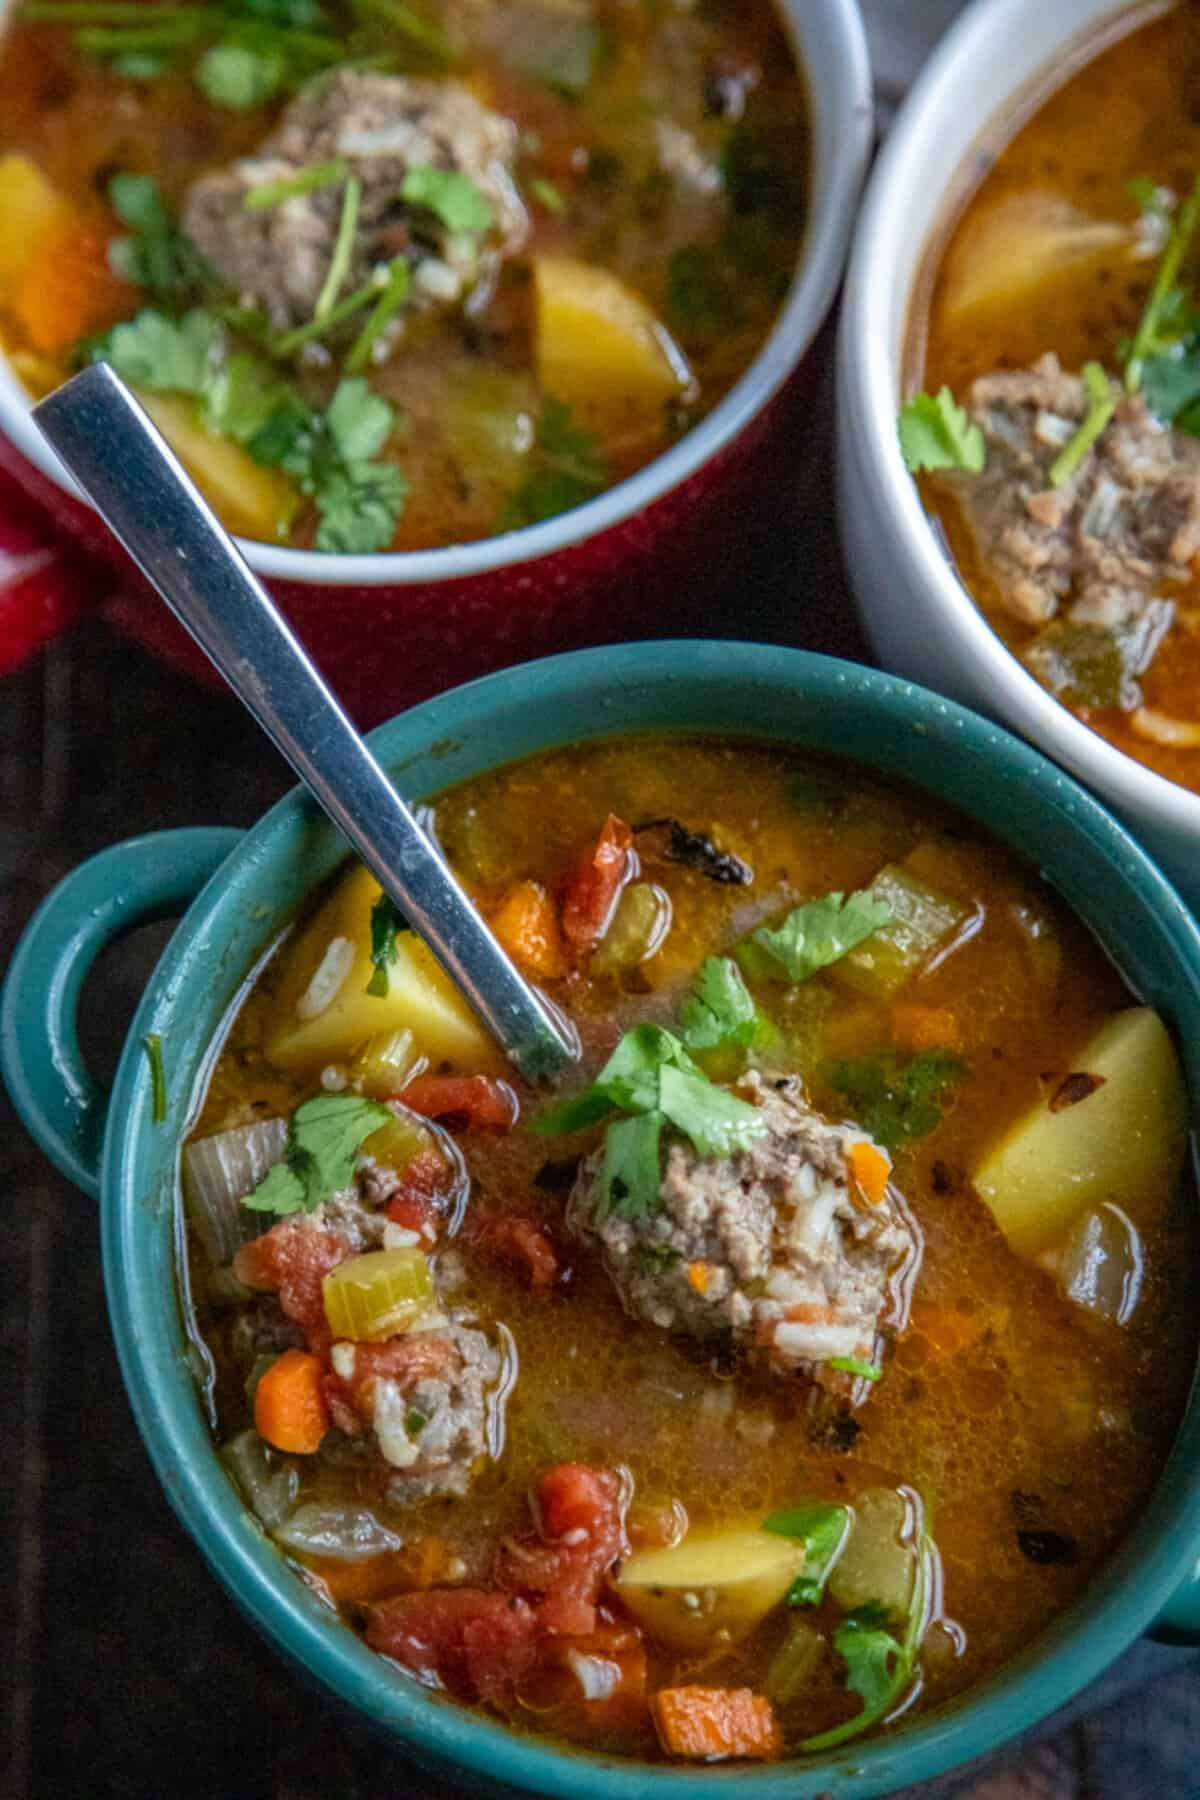 albondigas in teal bowls with a spoon